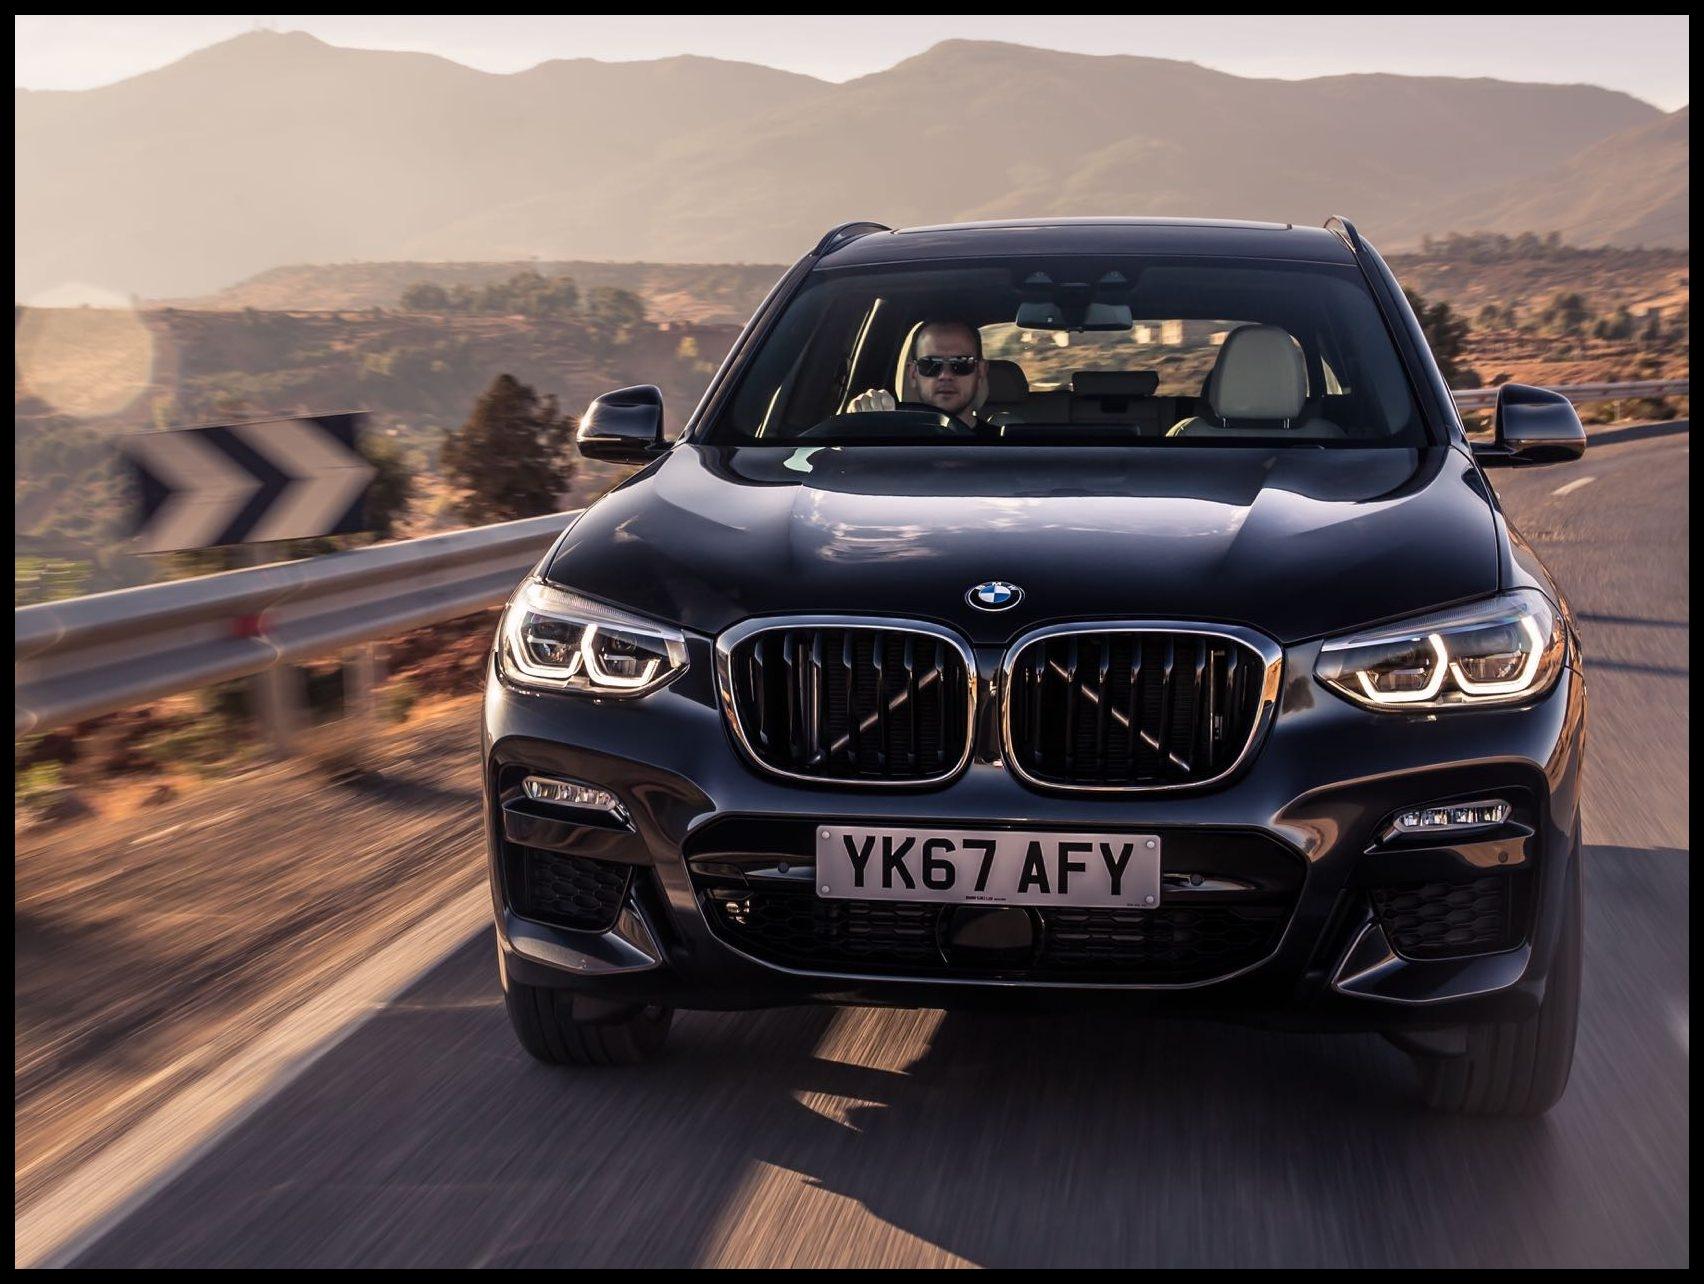 The BMW X3 has history and enduring desirability on its side in the immensely popular SUV sector which shows no sign of contracting but continues to expand